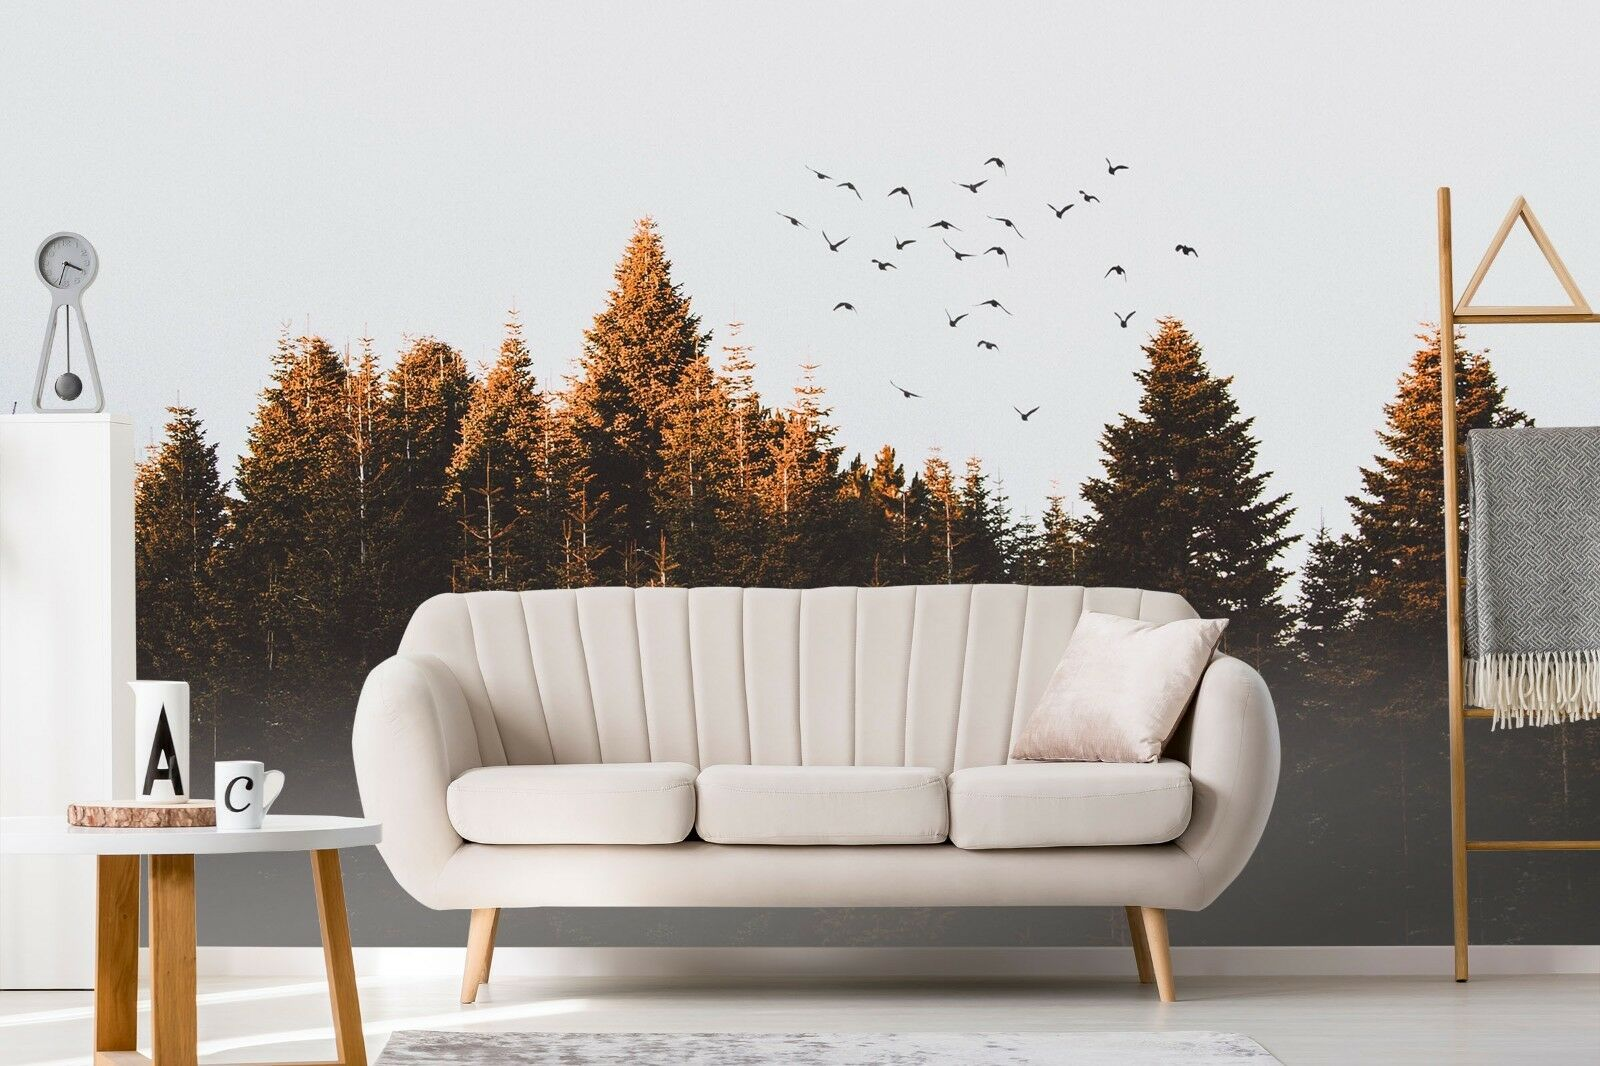 3D Weiß Clouds Forest 81 Wall Paper Exclusive MXY Wallpaper Mural Decal Indoor